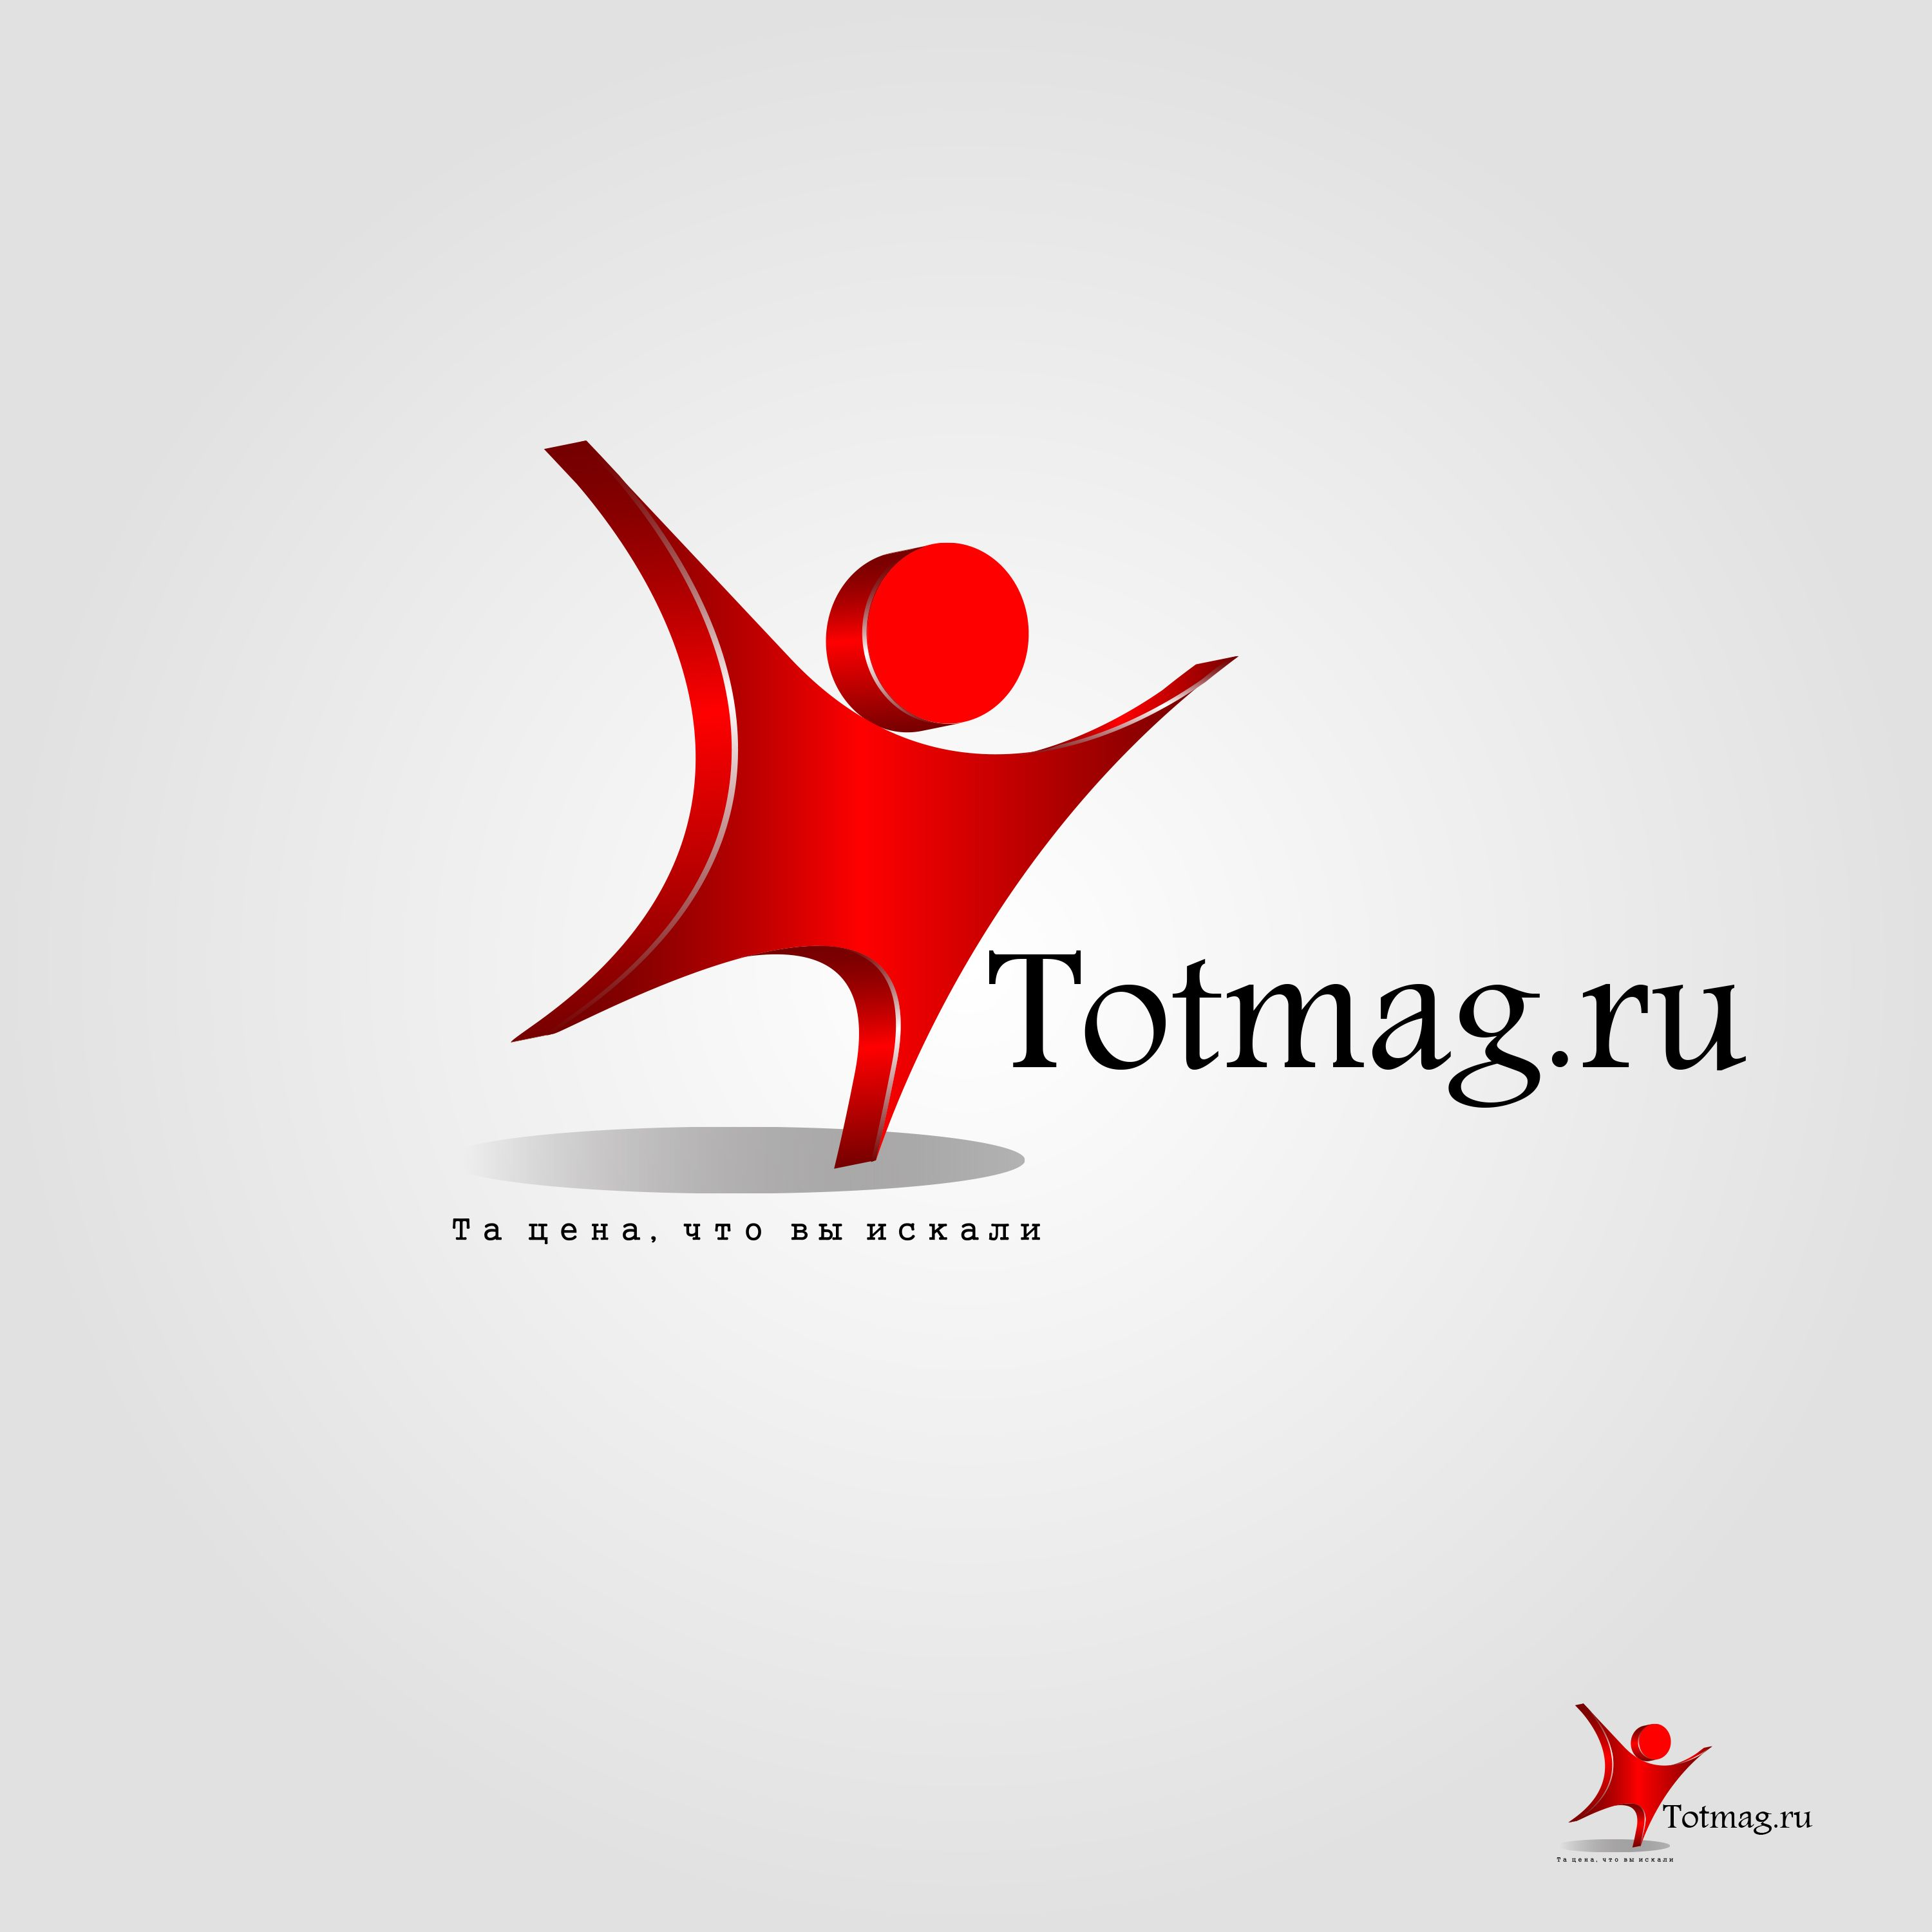 Логотип для интернет магазина totmag.ru - дизайнер Artfoth